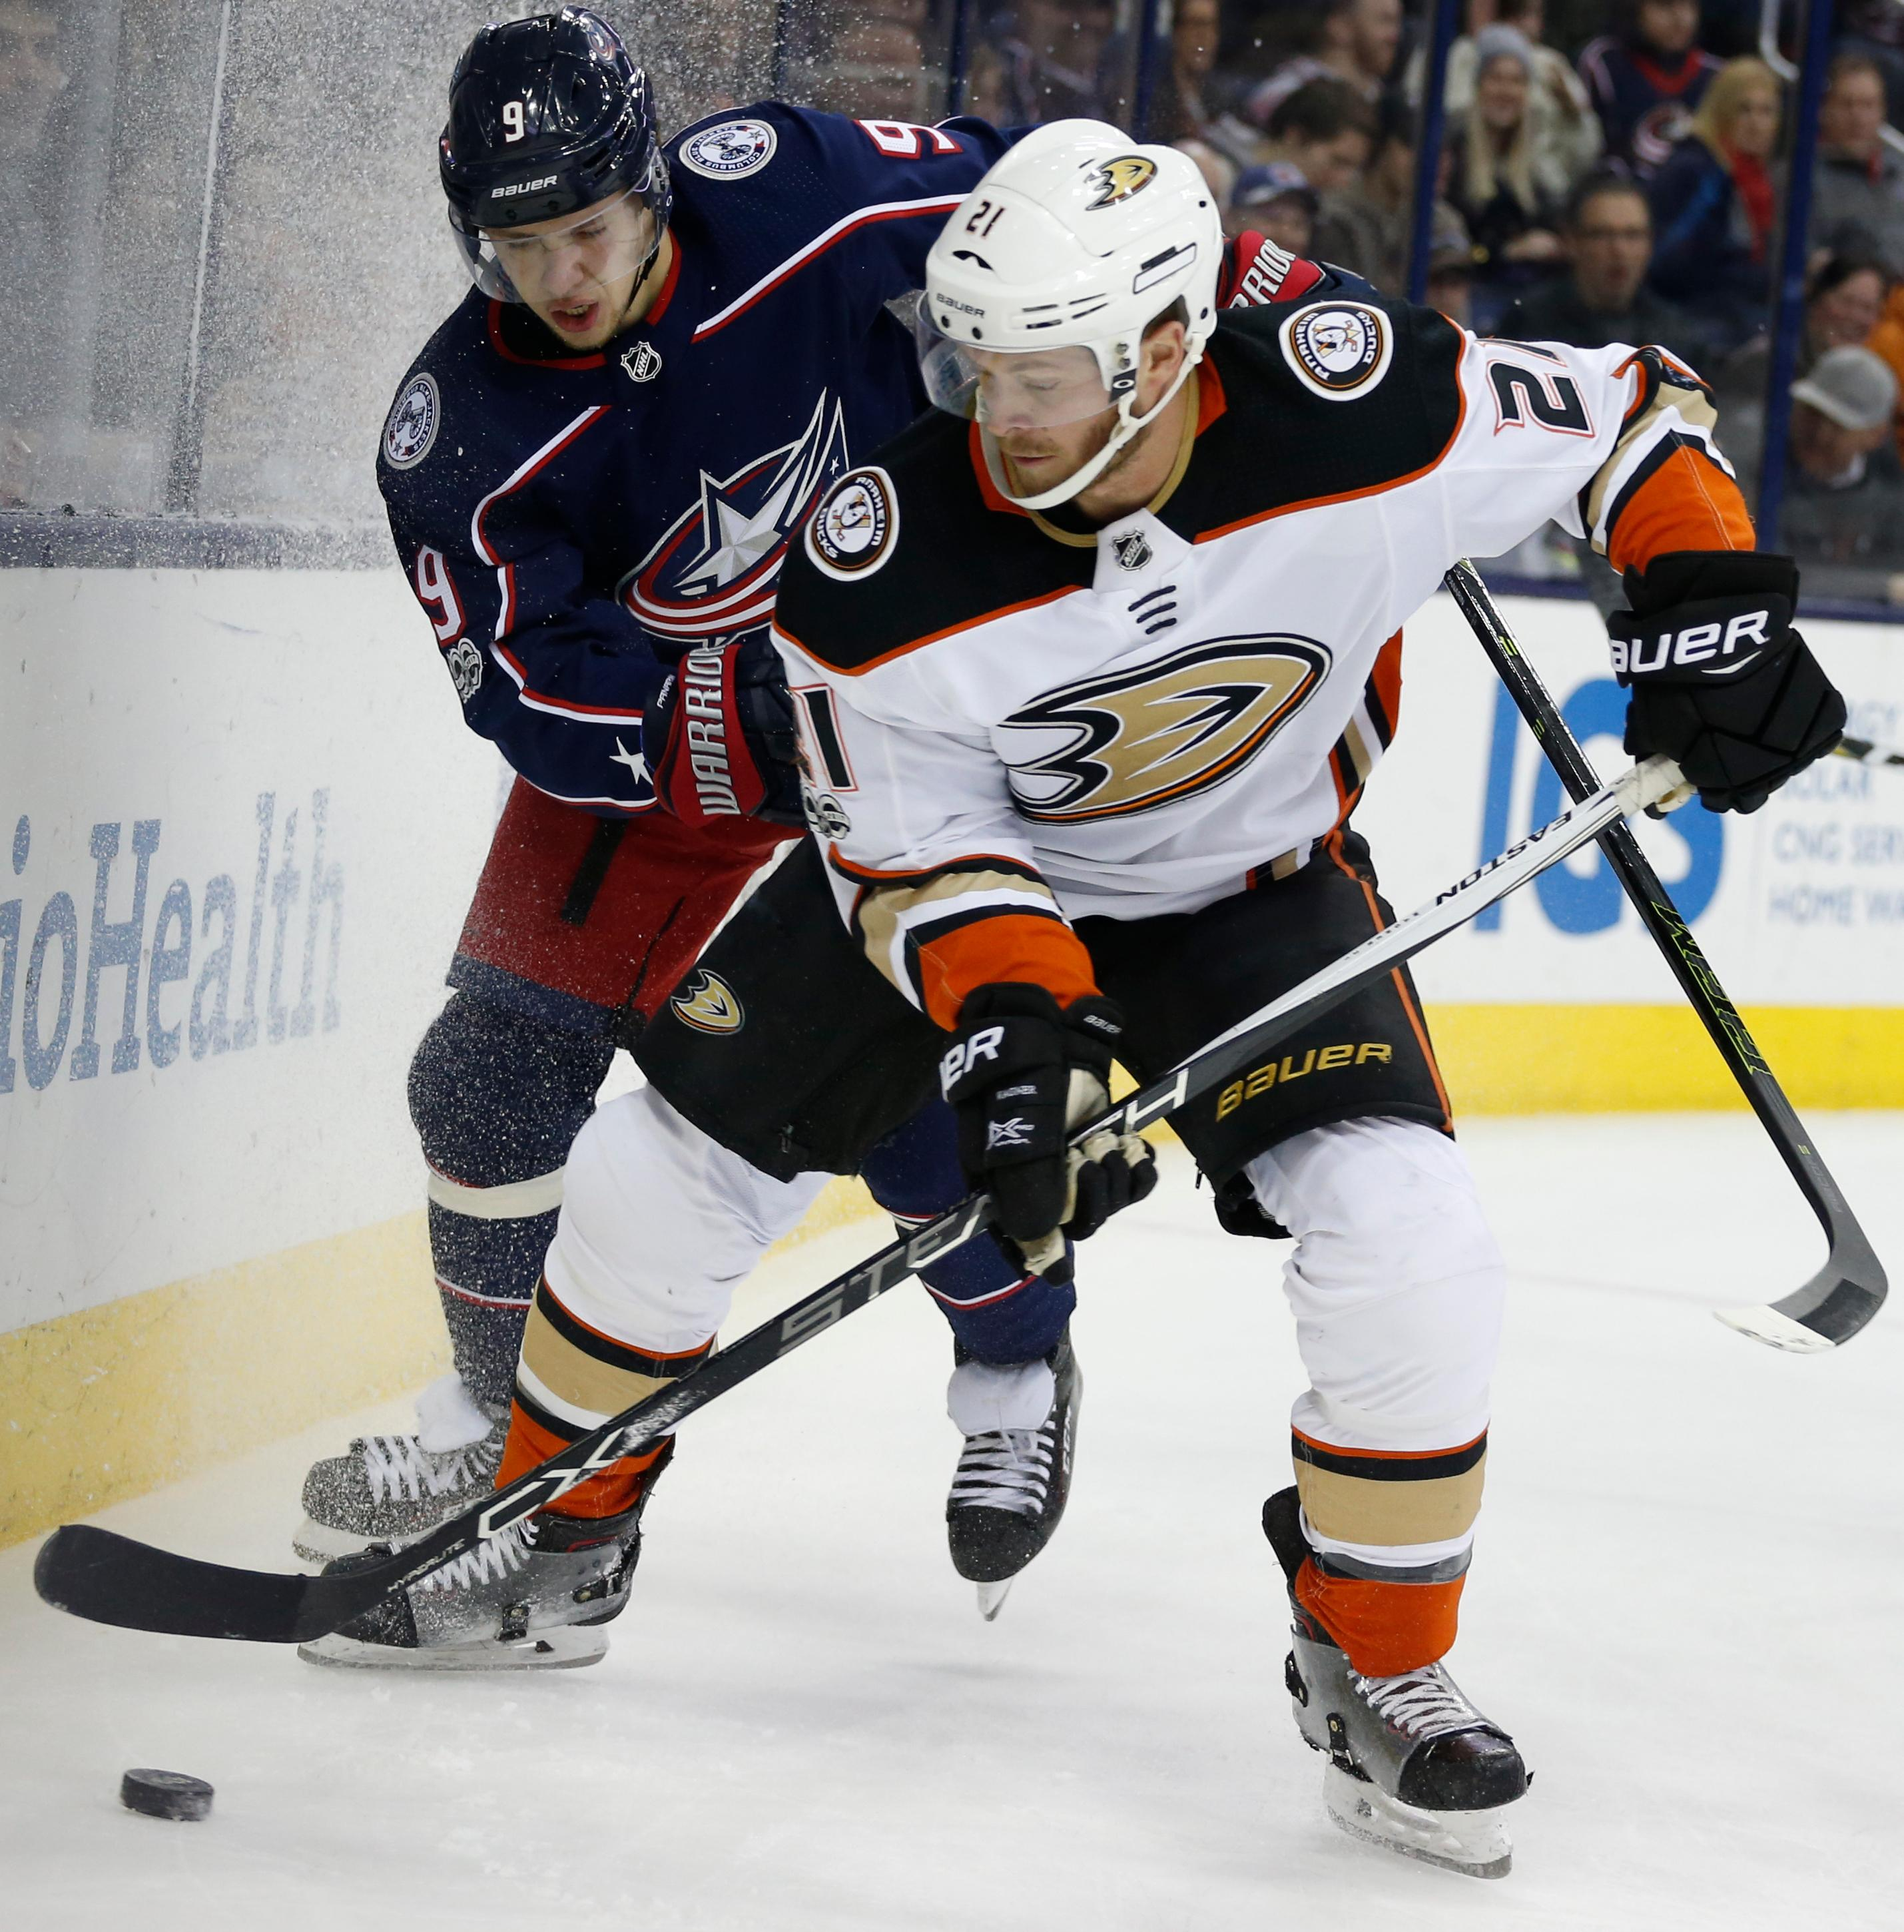 Anaheim Ducks' Chris Wagner, right, clears the puck in front of Columbus Blue Jackets' Artemi Panarin, of Russia, during the first period of an NHL hockey game Friday, Dec. 1, 2017, in Columbus, Ohio. (AP Photo/Jay LaPrete)